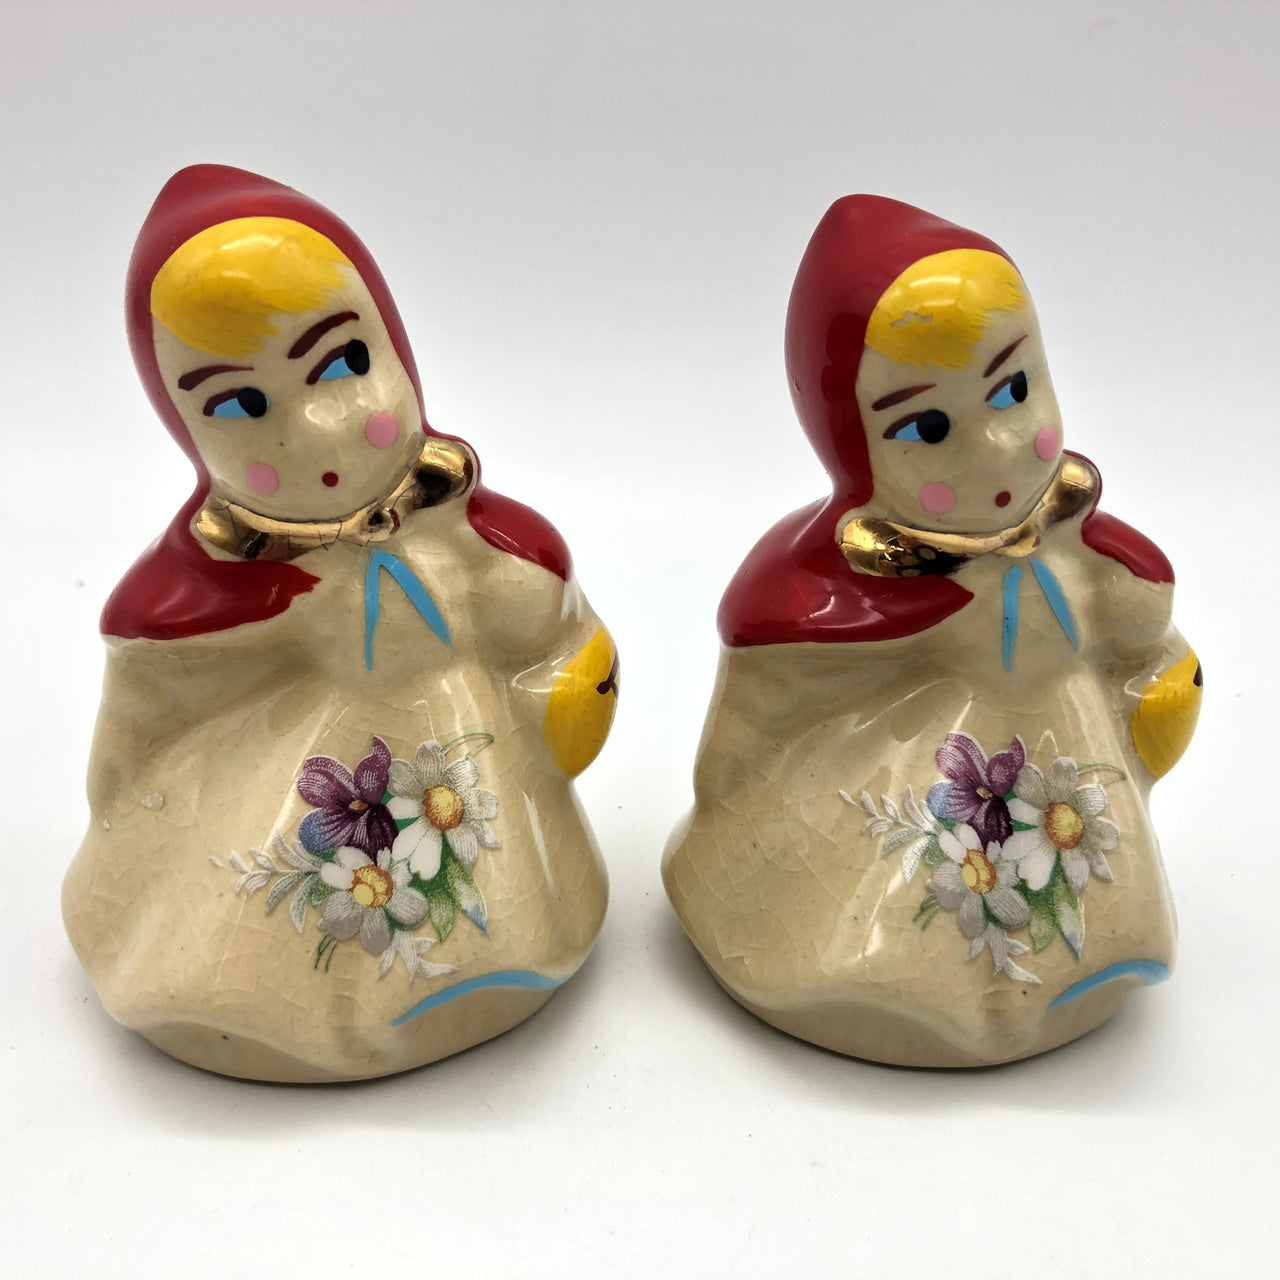 Vintage Little Red Riding Hood Salt and Pepper Shaker Set Girl Red Coat Basket